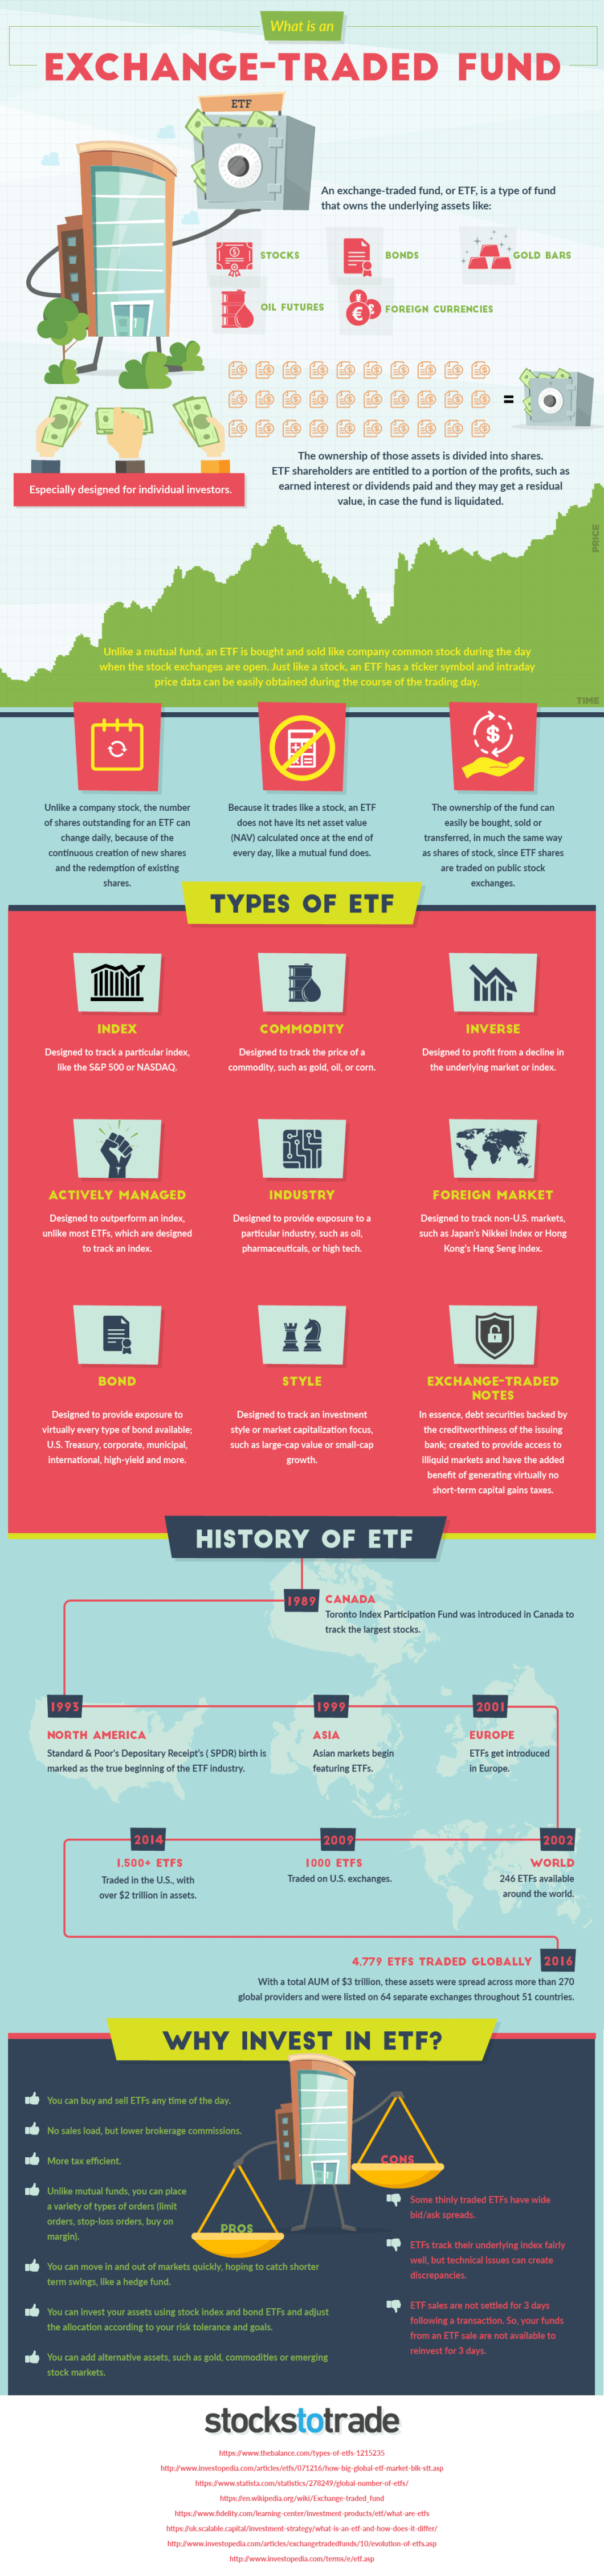 Everything You Want to Know About ETF - Infographic